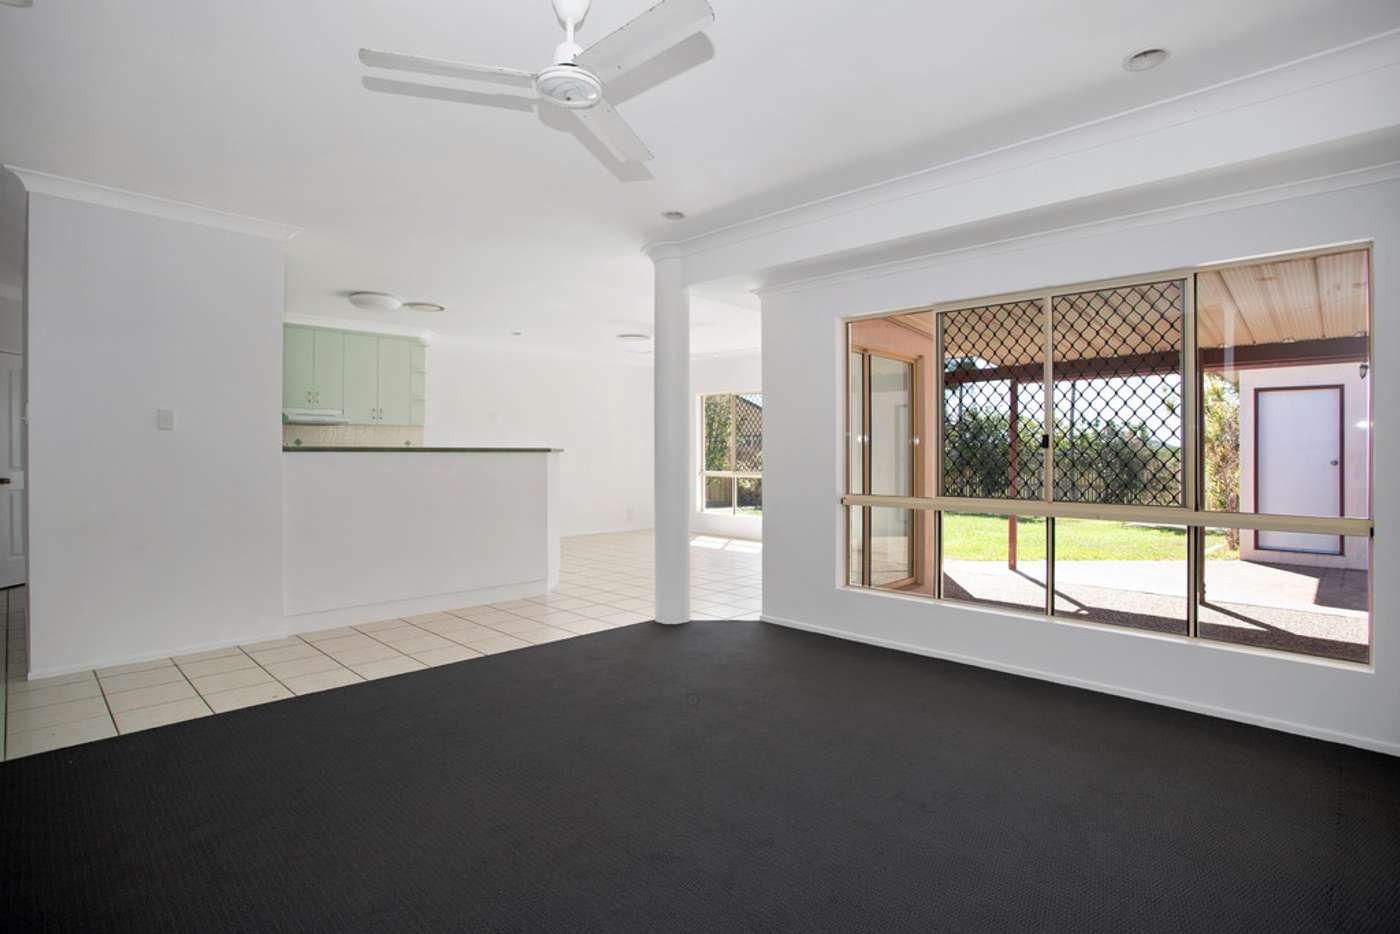 Seventh view of Homely house listing, 57 Caledonian Drive, Beaconsfield QLD 4740